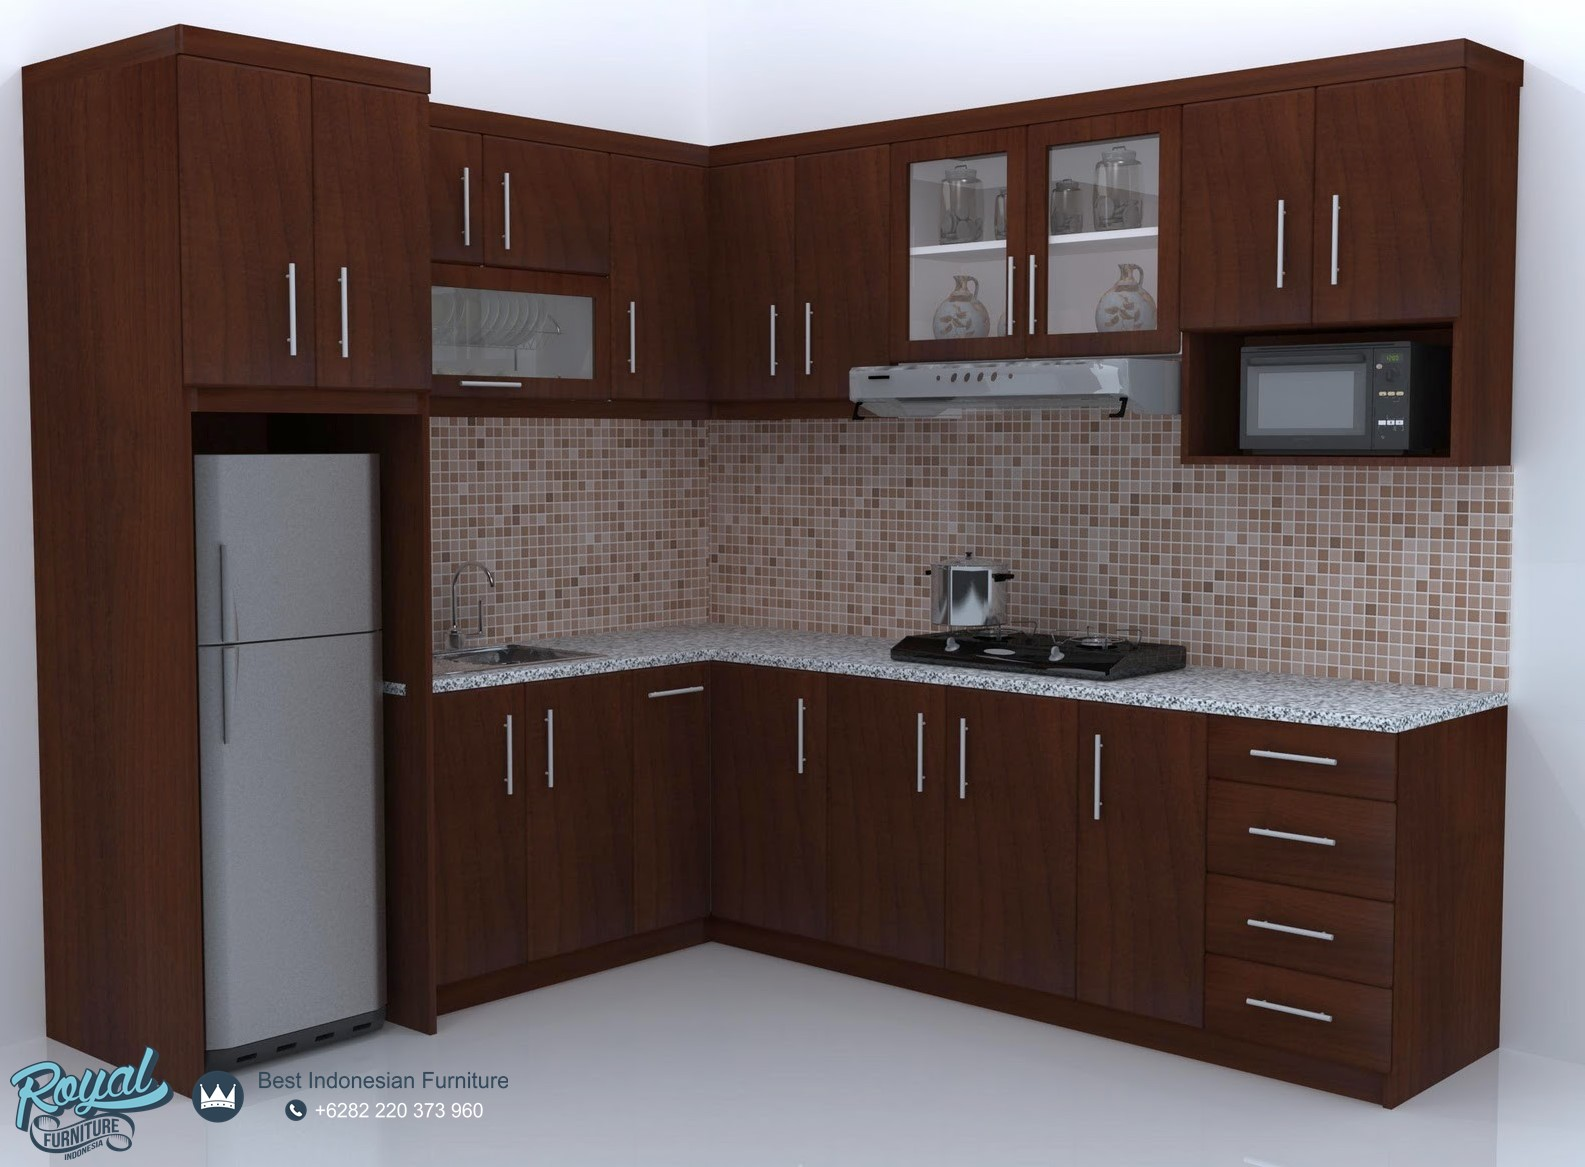 Harga Dapur Set Jati Aluminium Mewah Minimalis Jati Terbaru, kitchen set minimalis terbaru, kitchen set minimalis murah, kitchen set harga, kitchen set murah, kitchen set sederhana, kitchen set design, kitchen set jati, desain kitchen set classic, model kitchen set mewah klasik, kitchen set minimalis, model kitchen set terbaru, model kitchen set terbaru, gambar kitchen set minimalis putih duco, kitchen kayu mahoni, kitchen set jati terbaru, kitchen set ukiran, jual kitchen set kayu jati, kitchen set jepara, furniture jepara, royal furniture